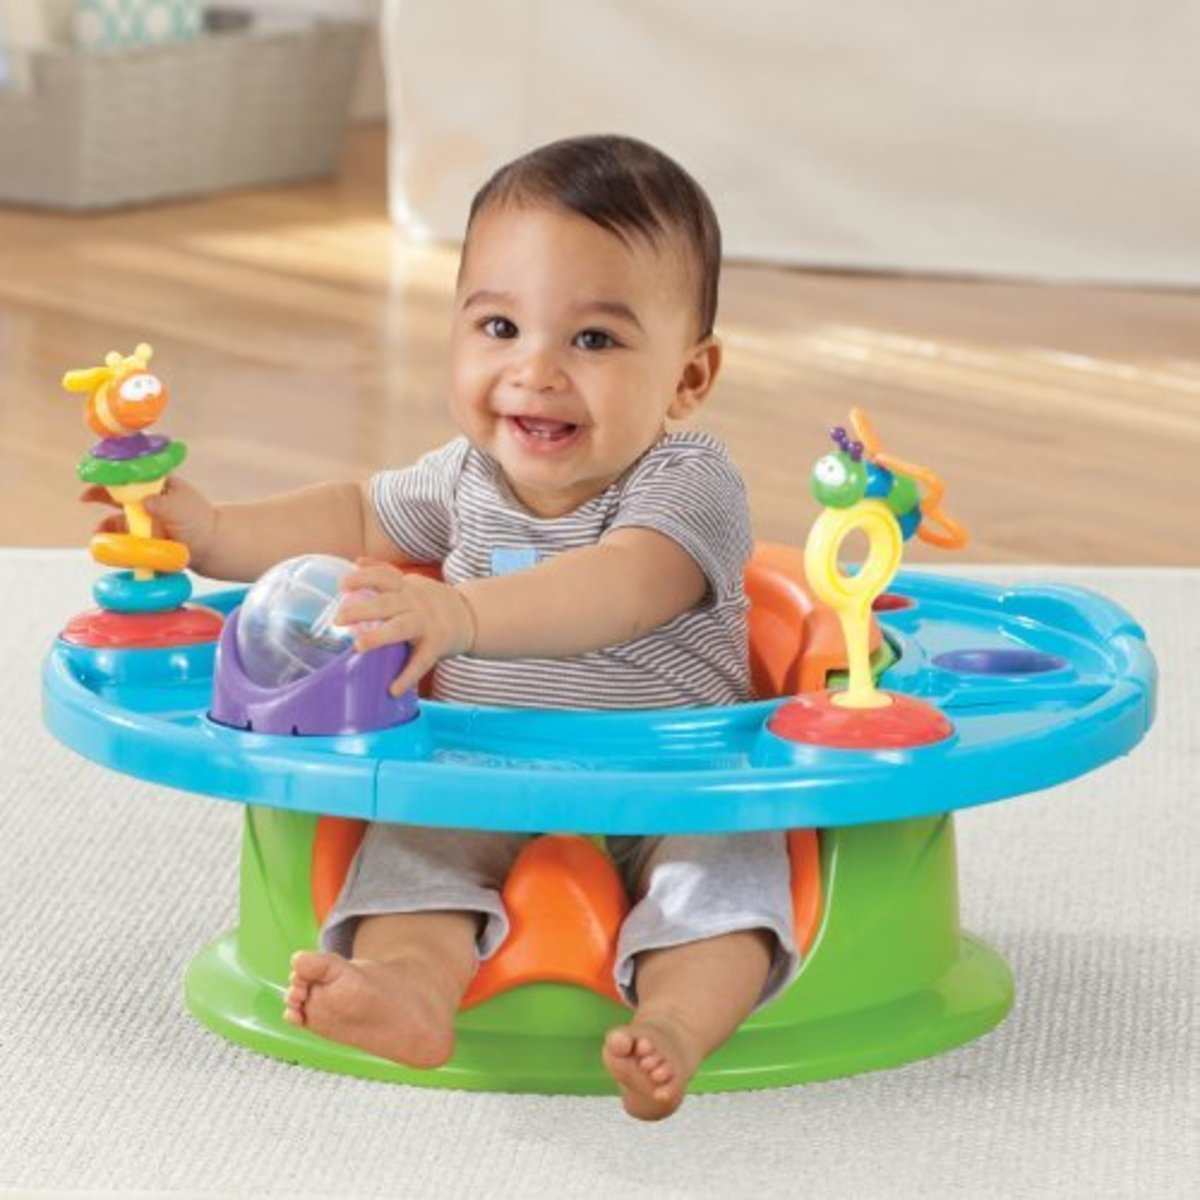 I personally love the Summer Infant 3-Stage Superseat Highchair because you can use it with so many different things. It's very versatile and  sturdy.